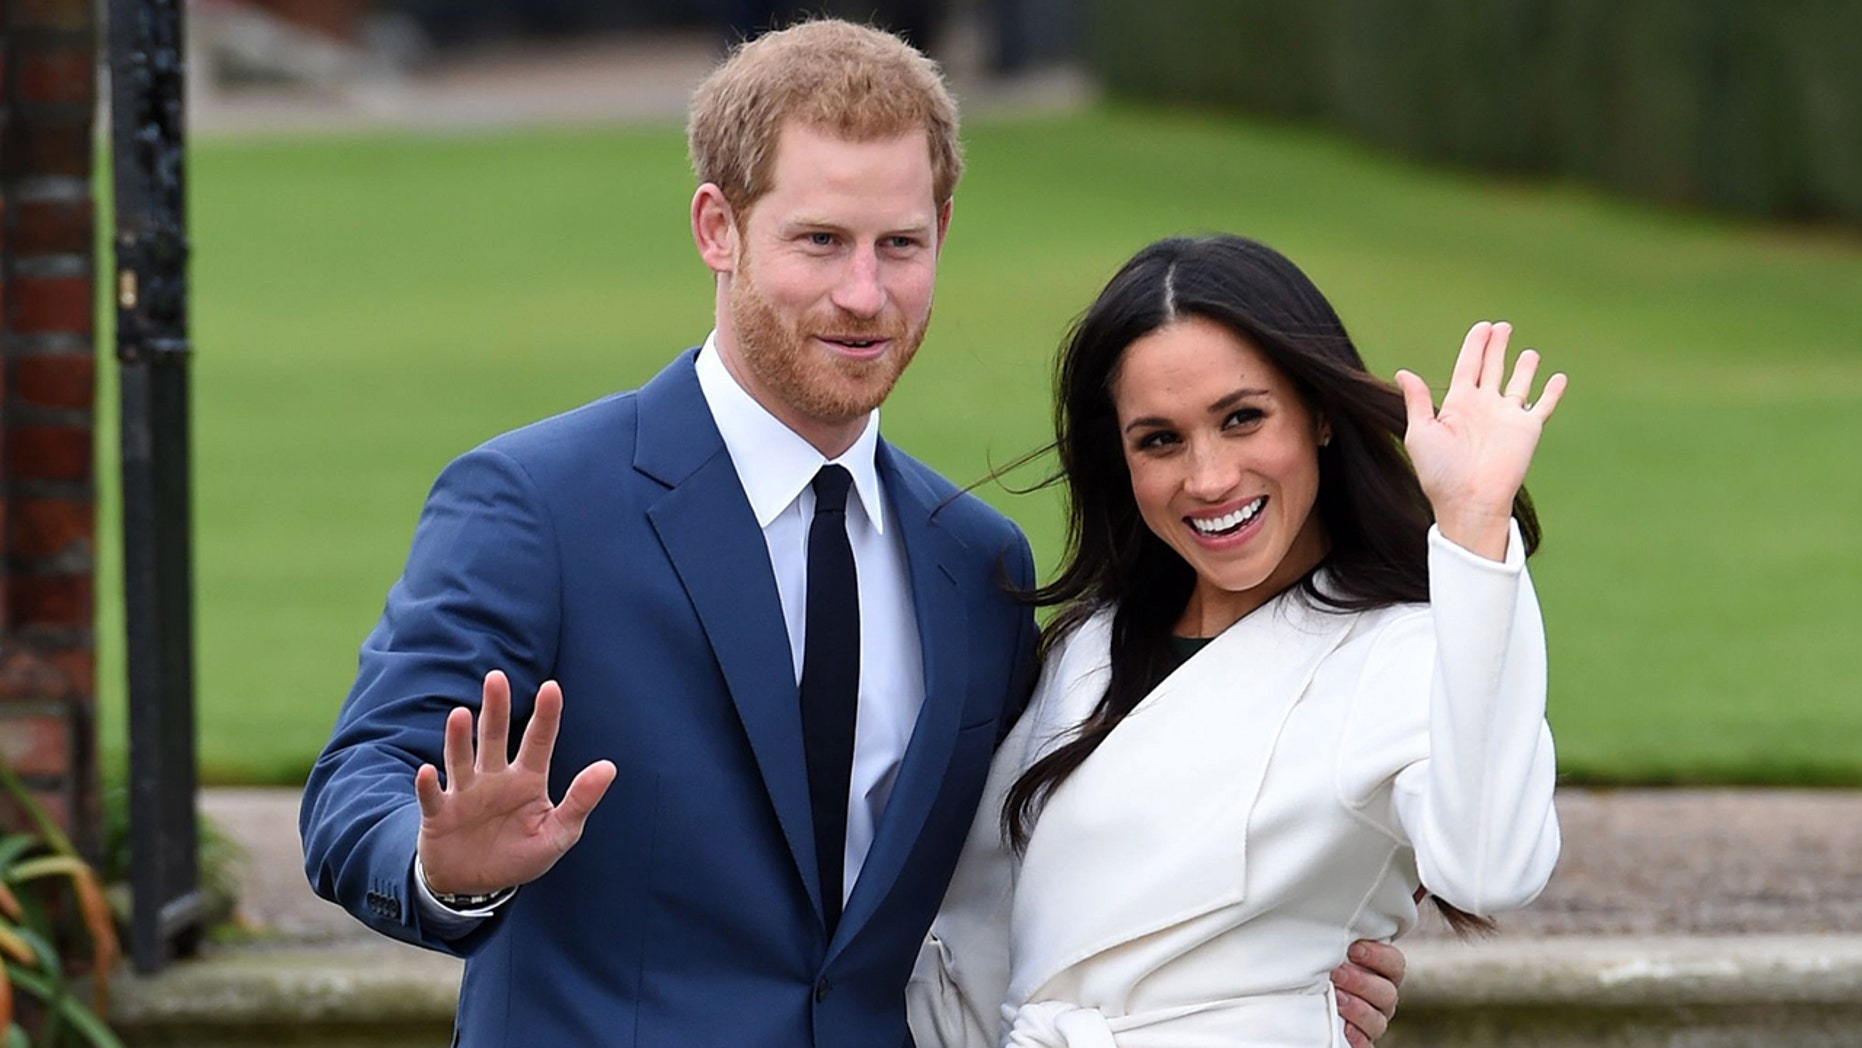 Prince Harry and his fiancee, American actress Meghan Markle, pose for photographers.